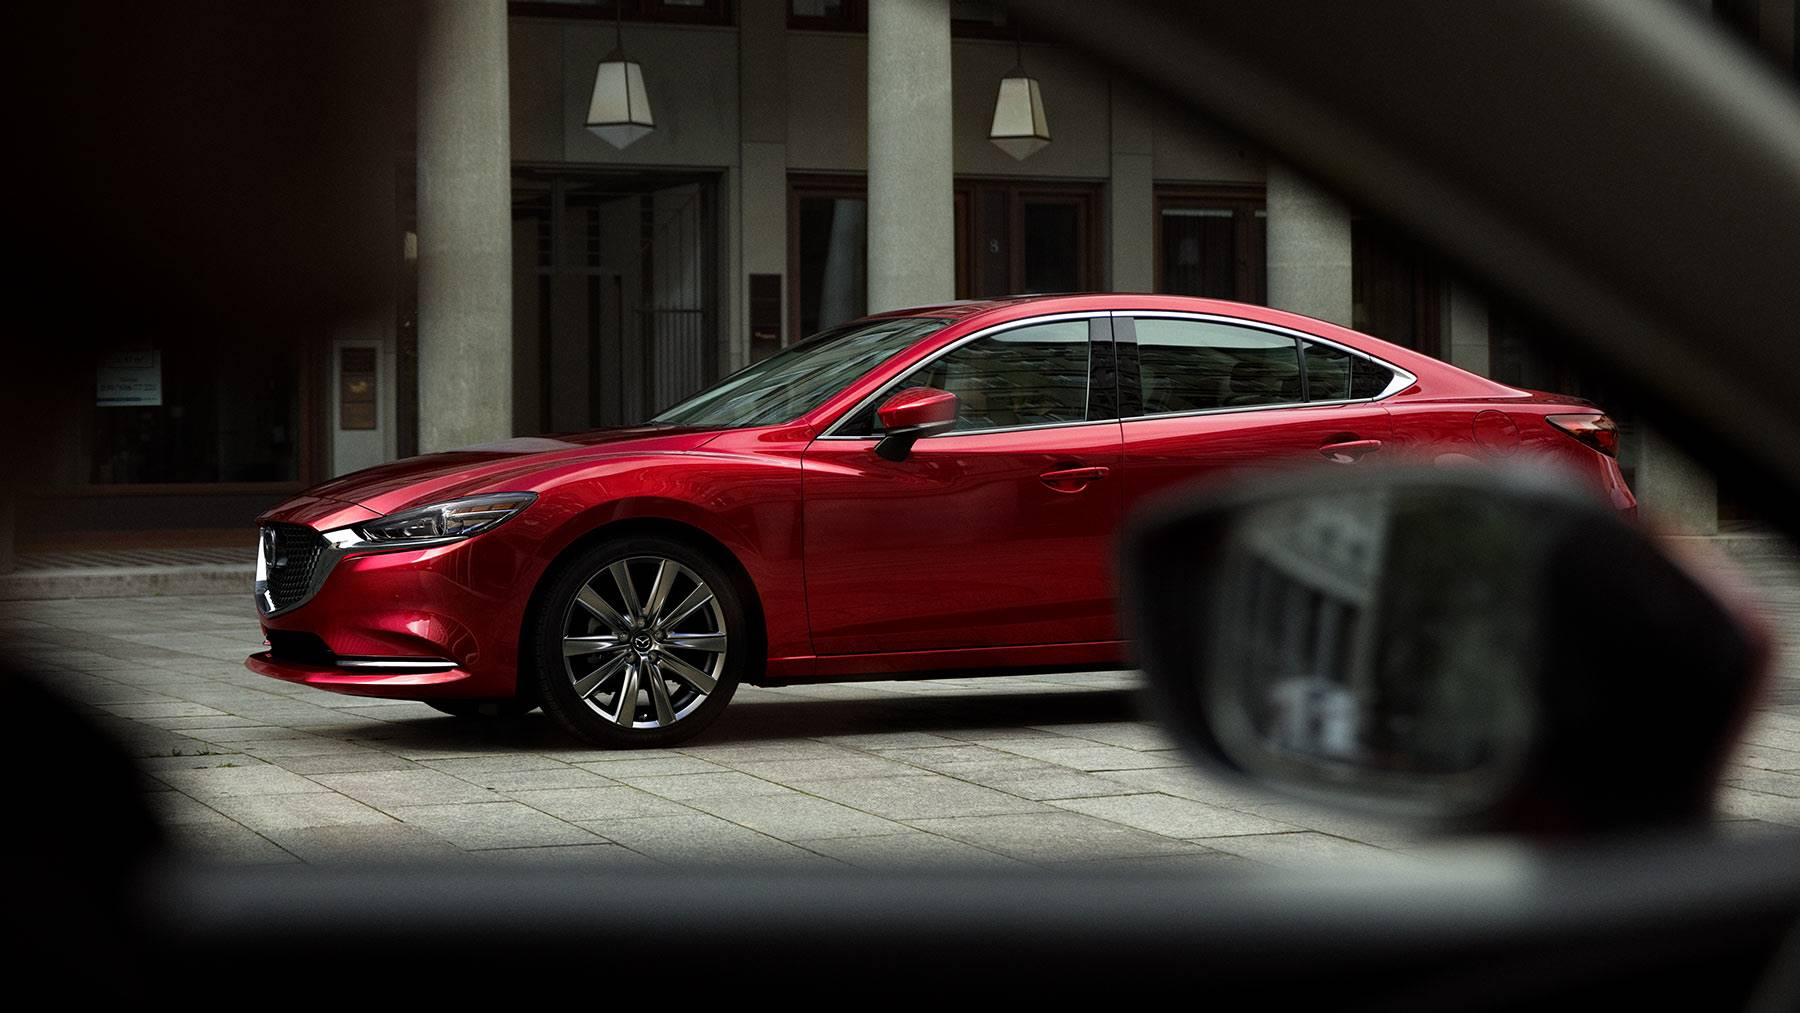 2018 Mazda6 Grand Touring Red Exterior Side View